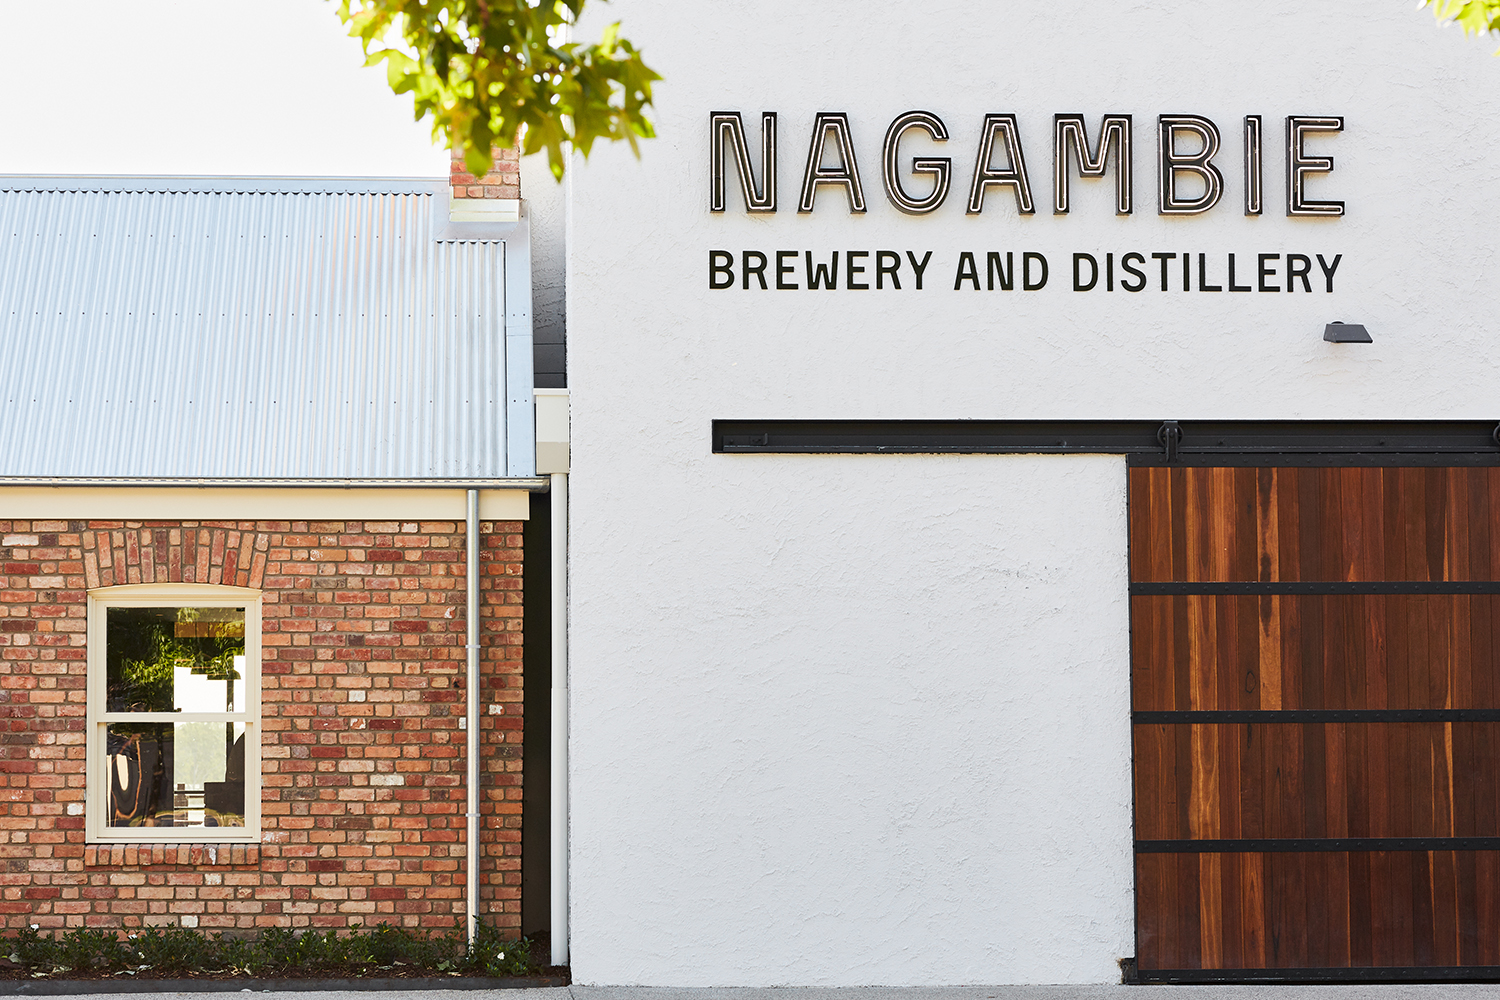 Nagambie Brewery and Distillery